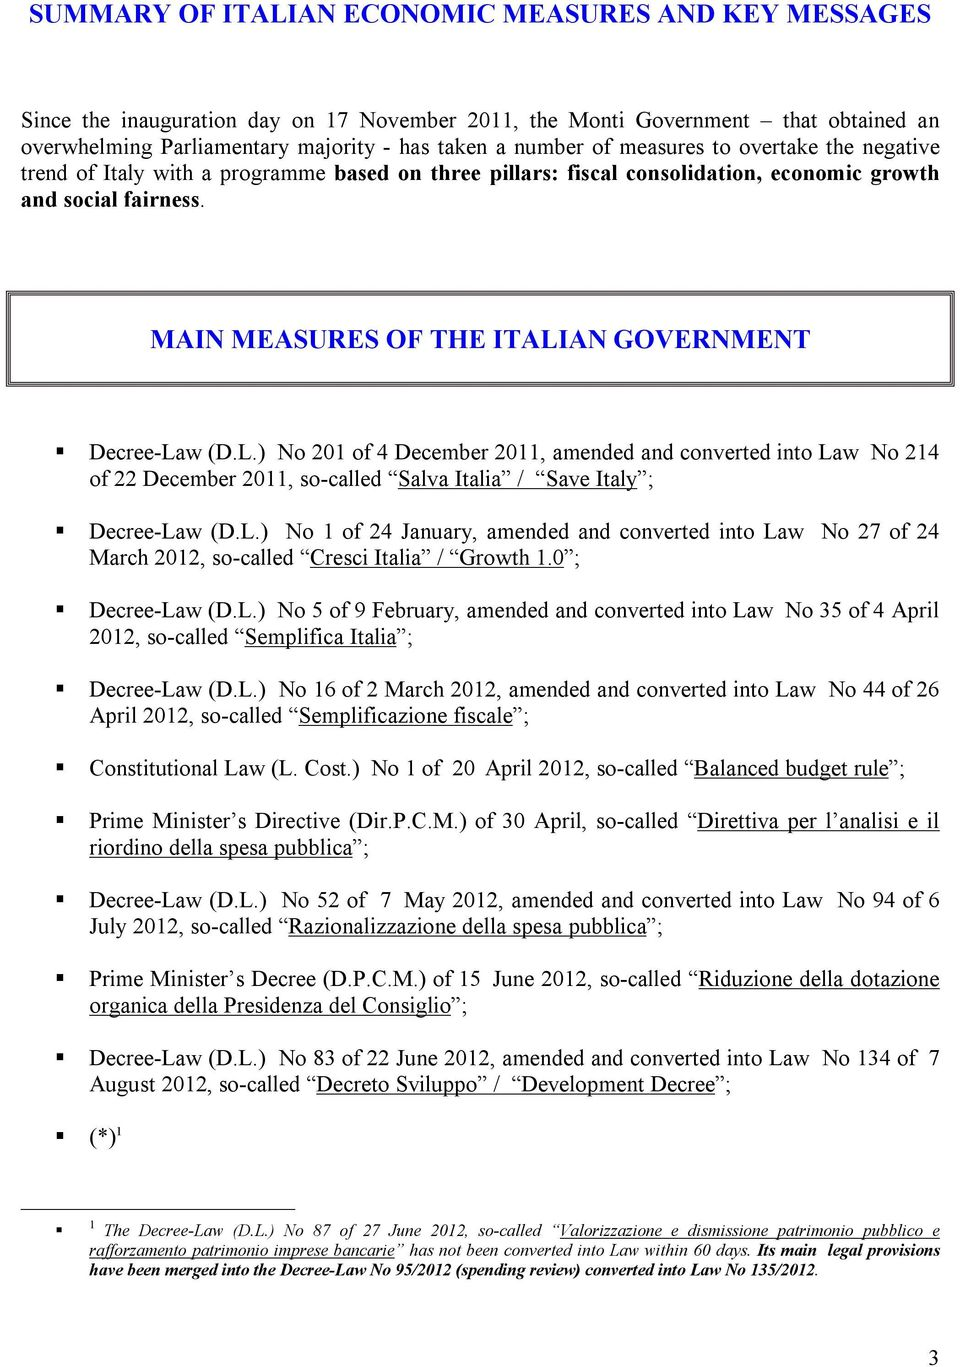 MAIN MEASURES OF THE ITALIAN GOVERNMENT Decree-Law (D.L.) No 201 of 4 December 2011, amended and converted into Law No 214 of 22 December 2011, so-called Salva Italia / Save Italy ; Decree-Law (D.L.) No 1 of 24 January, amended and converted into Law No 27 of 24 March 2012, so-called Cresci Italia / Growth 1.